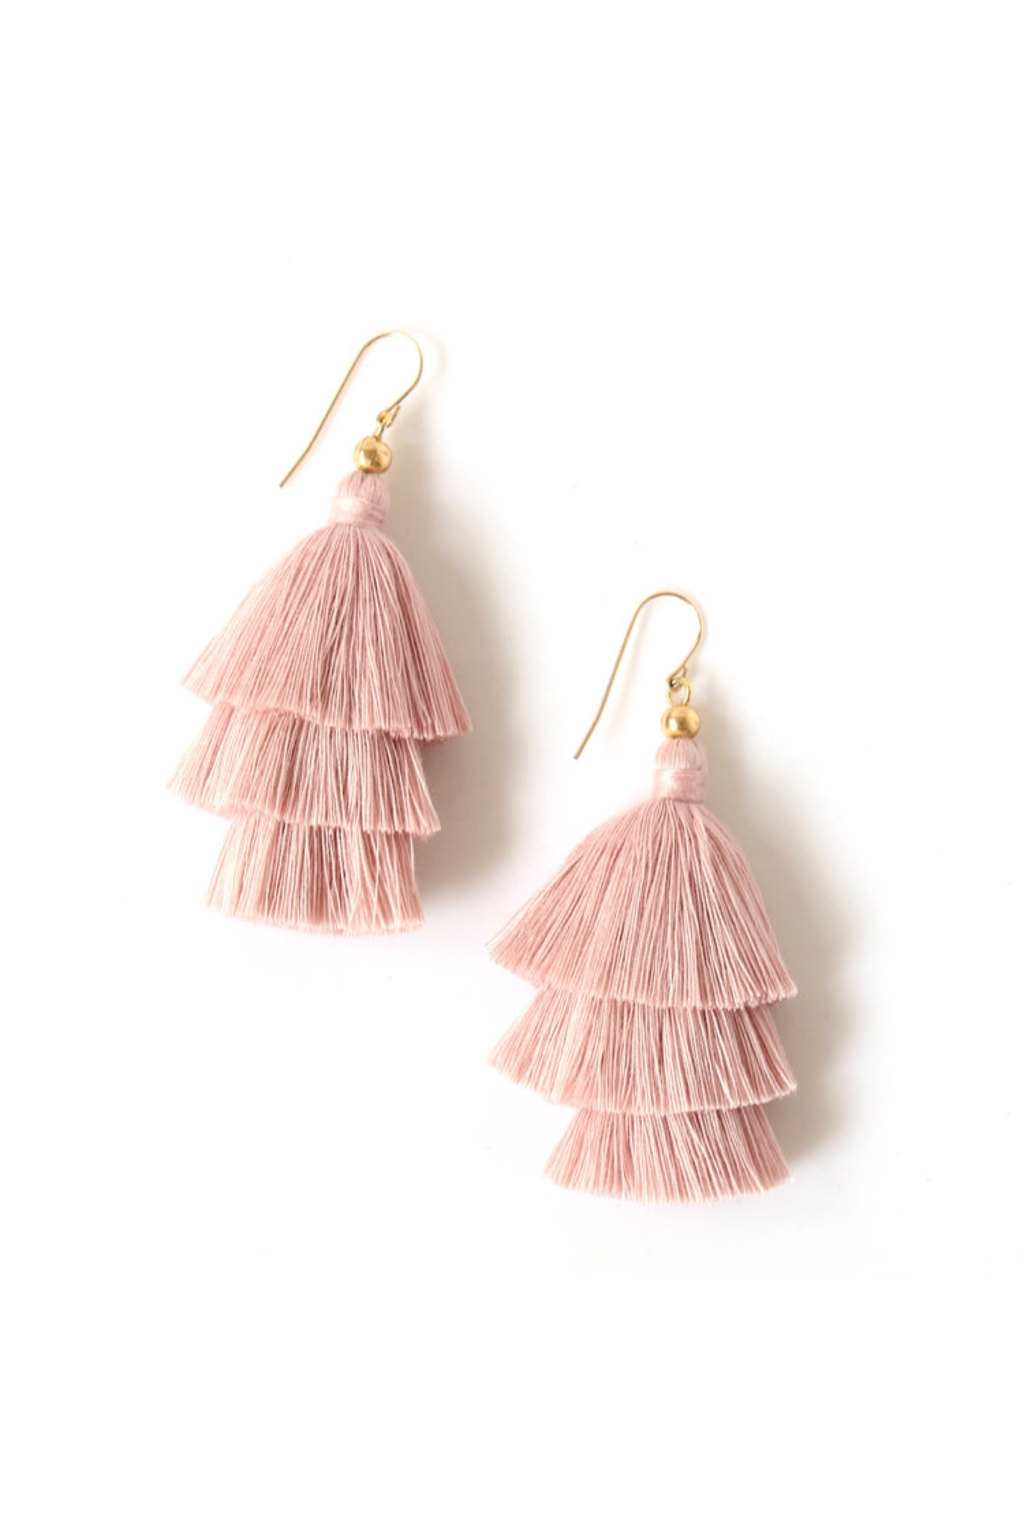 Ballerina Pink Mary Tassel Earrings - ROSE MADE SHOP